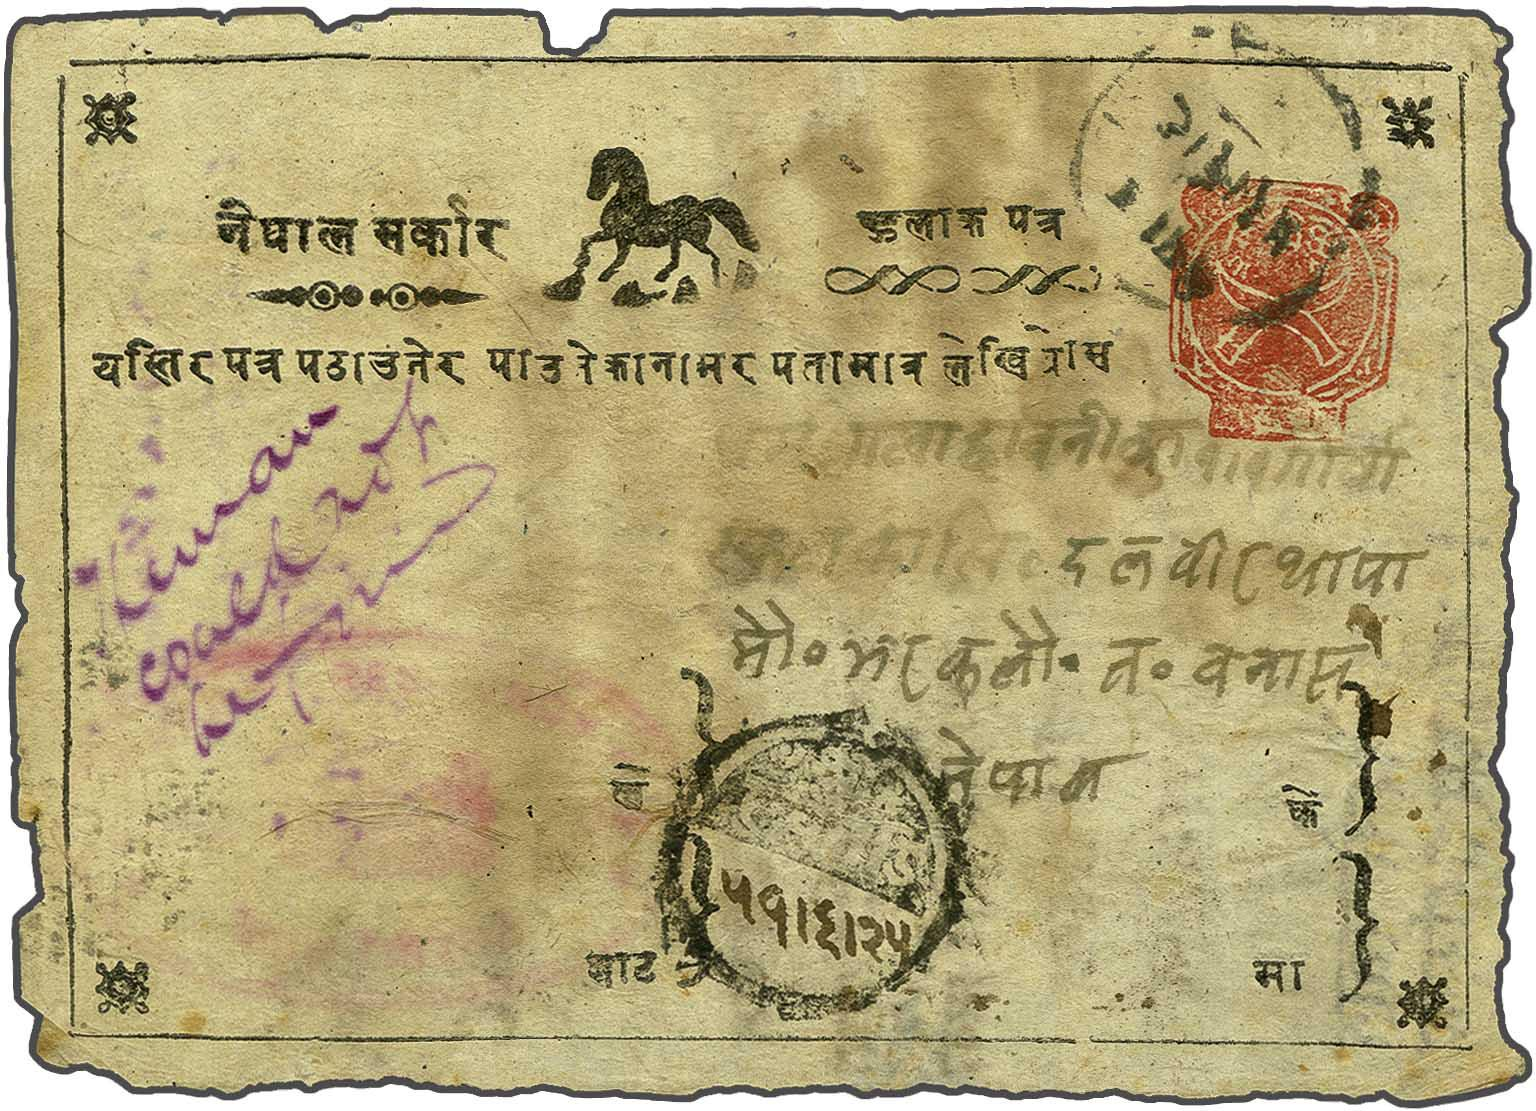 Lot 21 - Great Britain and former colonies Nepal -  Corinphila Veilingen Auction 245-246 Day 1 - Nepal - The Dick van der Wateren Collection, Foreign countries - Single lots, Picture postcards